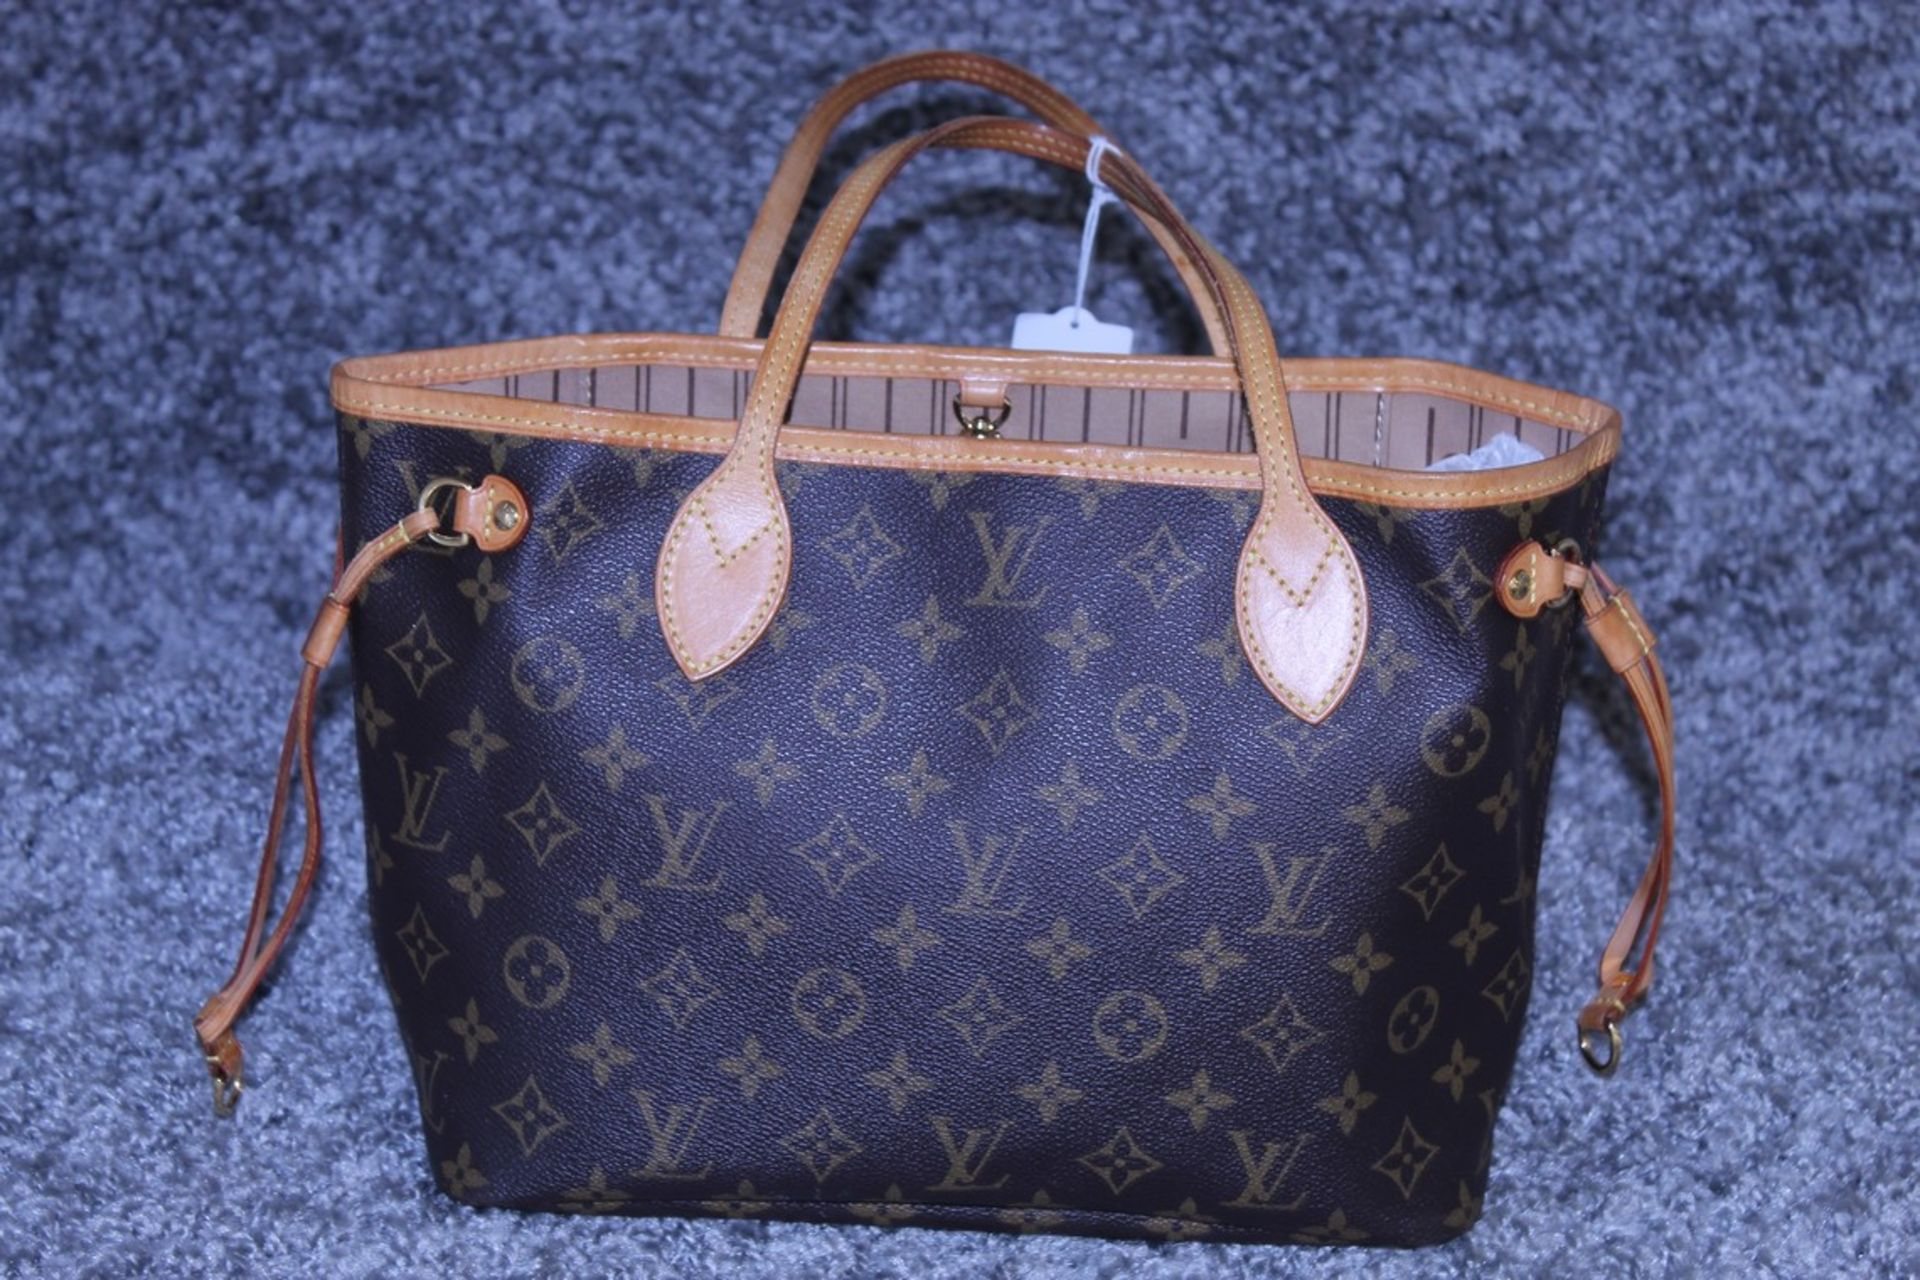 RRP £1500 Louis Vuitton Neverfull Handbag In Brown Coated Monogram Canvas With Vachetta Handle ( - Image 2 of 6